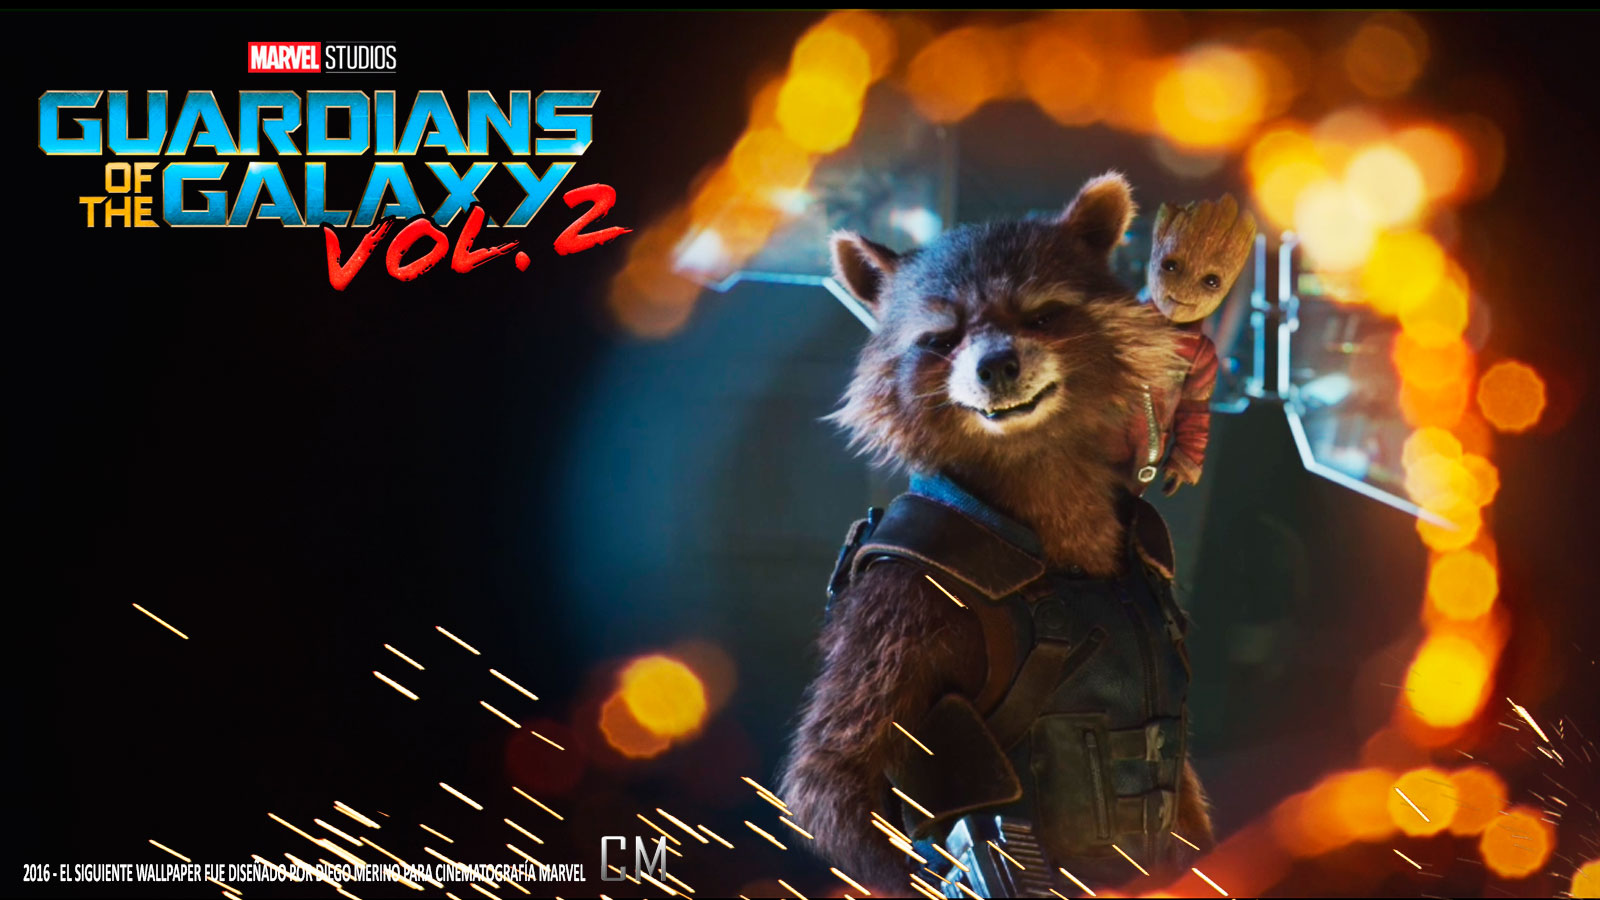 Guardianes De La Galaxia Vol - Rocket Raccoon Smiling Gif , HD Wallpaper & Backgrounds